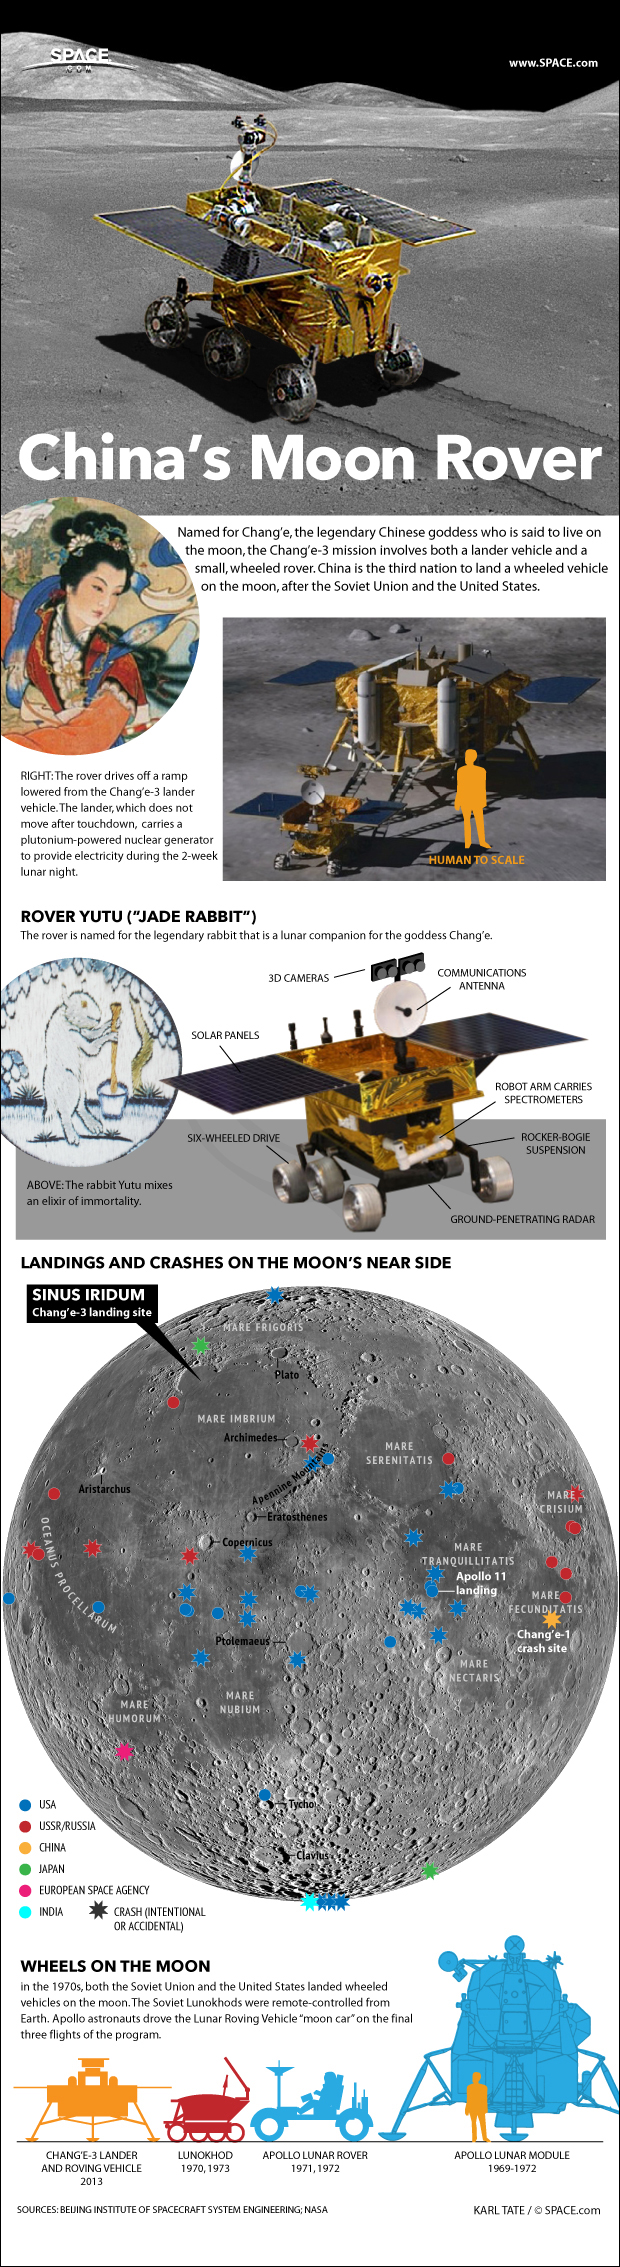 China Moon Rover Hits Snag in Big Lunar Science Mission | Space.com